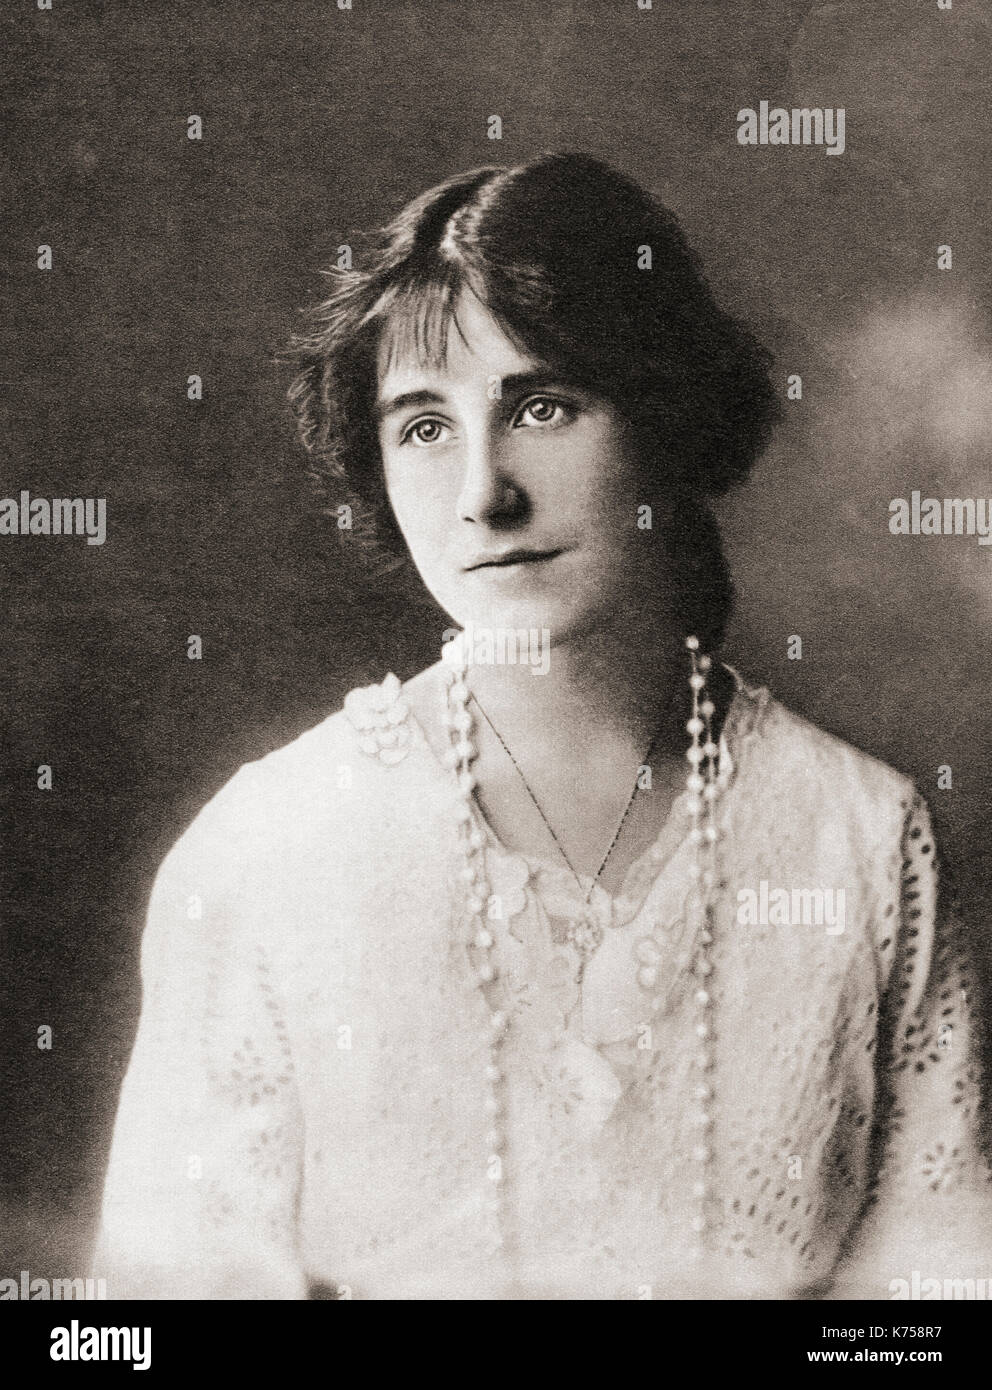 Lady  Elizabeth Angela Marguerite Bowes-Lyon, 1900 – 2002, seen here aged 16.  Future Duchess of York, Queen Elizabeth as wife of King George VI and mother of Queen Elizabeth II.  From The Coronation Book of King George VI and Queen Elizabeth, published 1937. - Stock Image